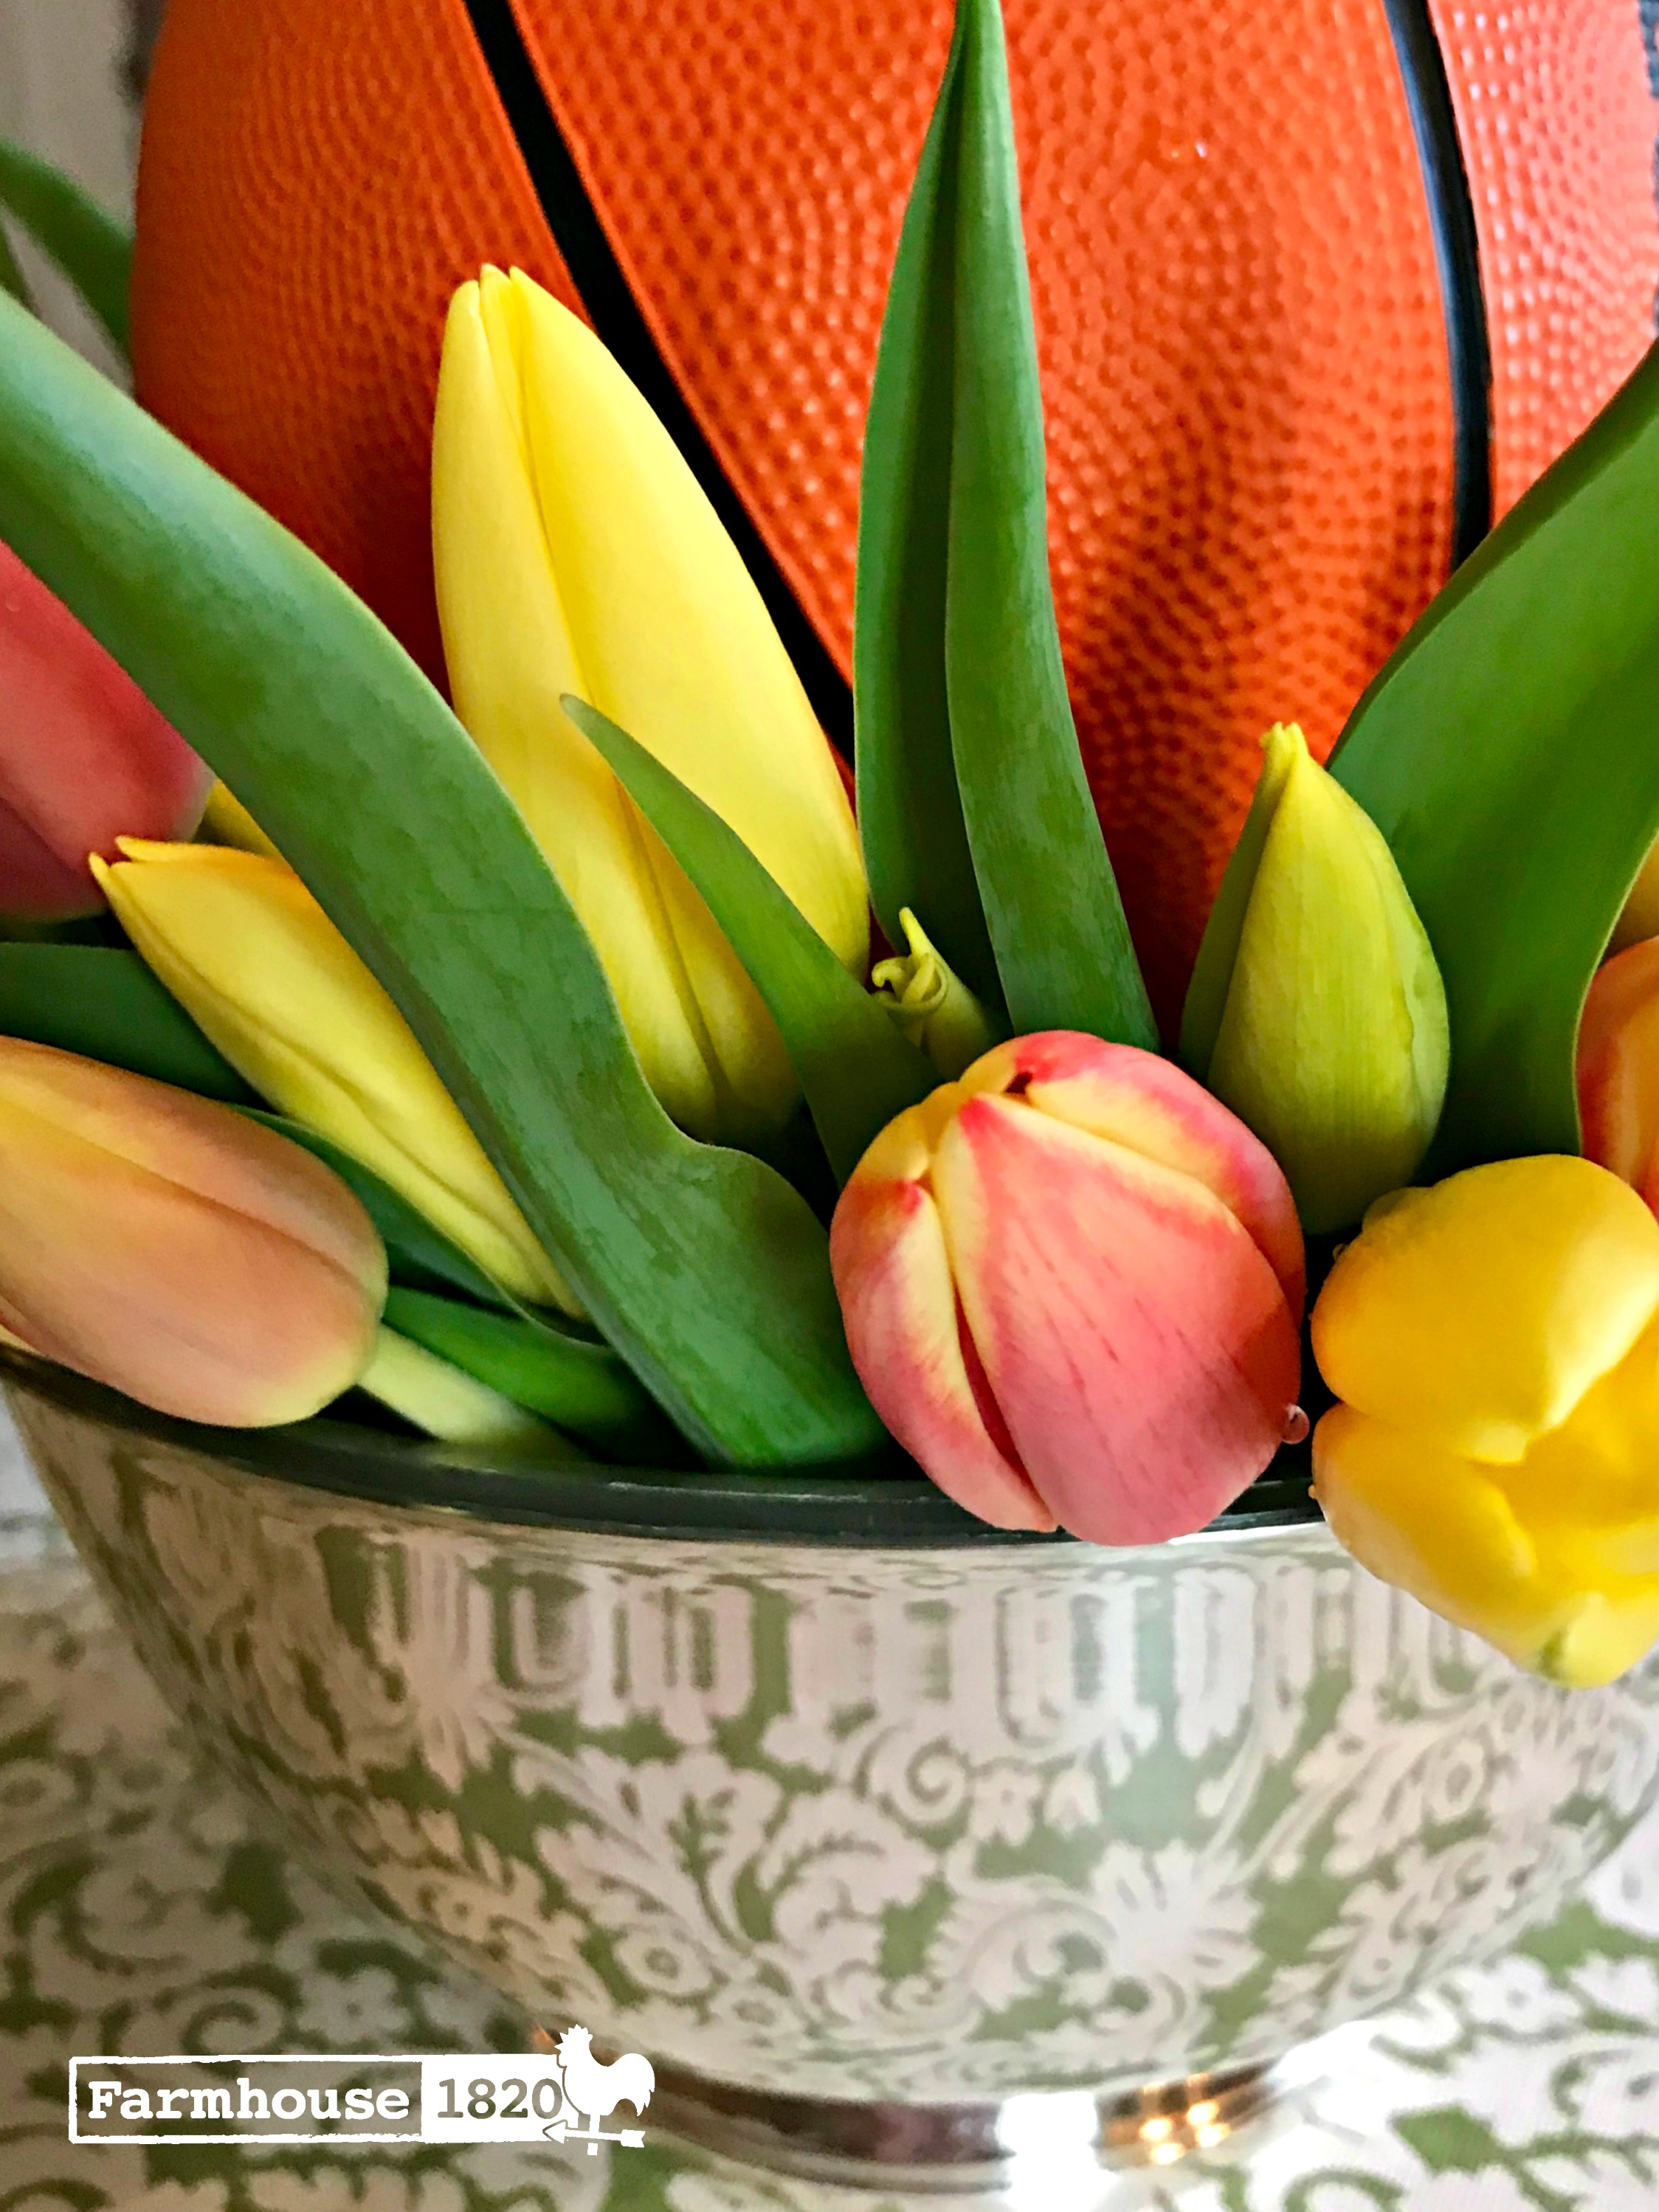 March Madness - tulips and a basketball